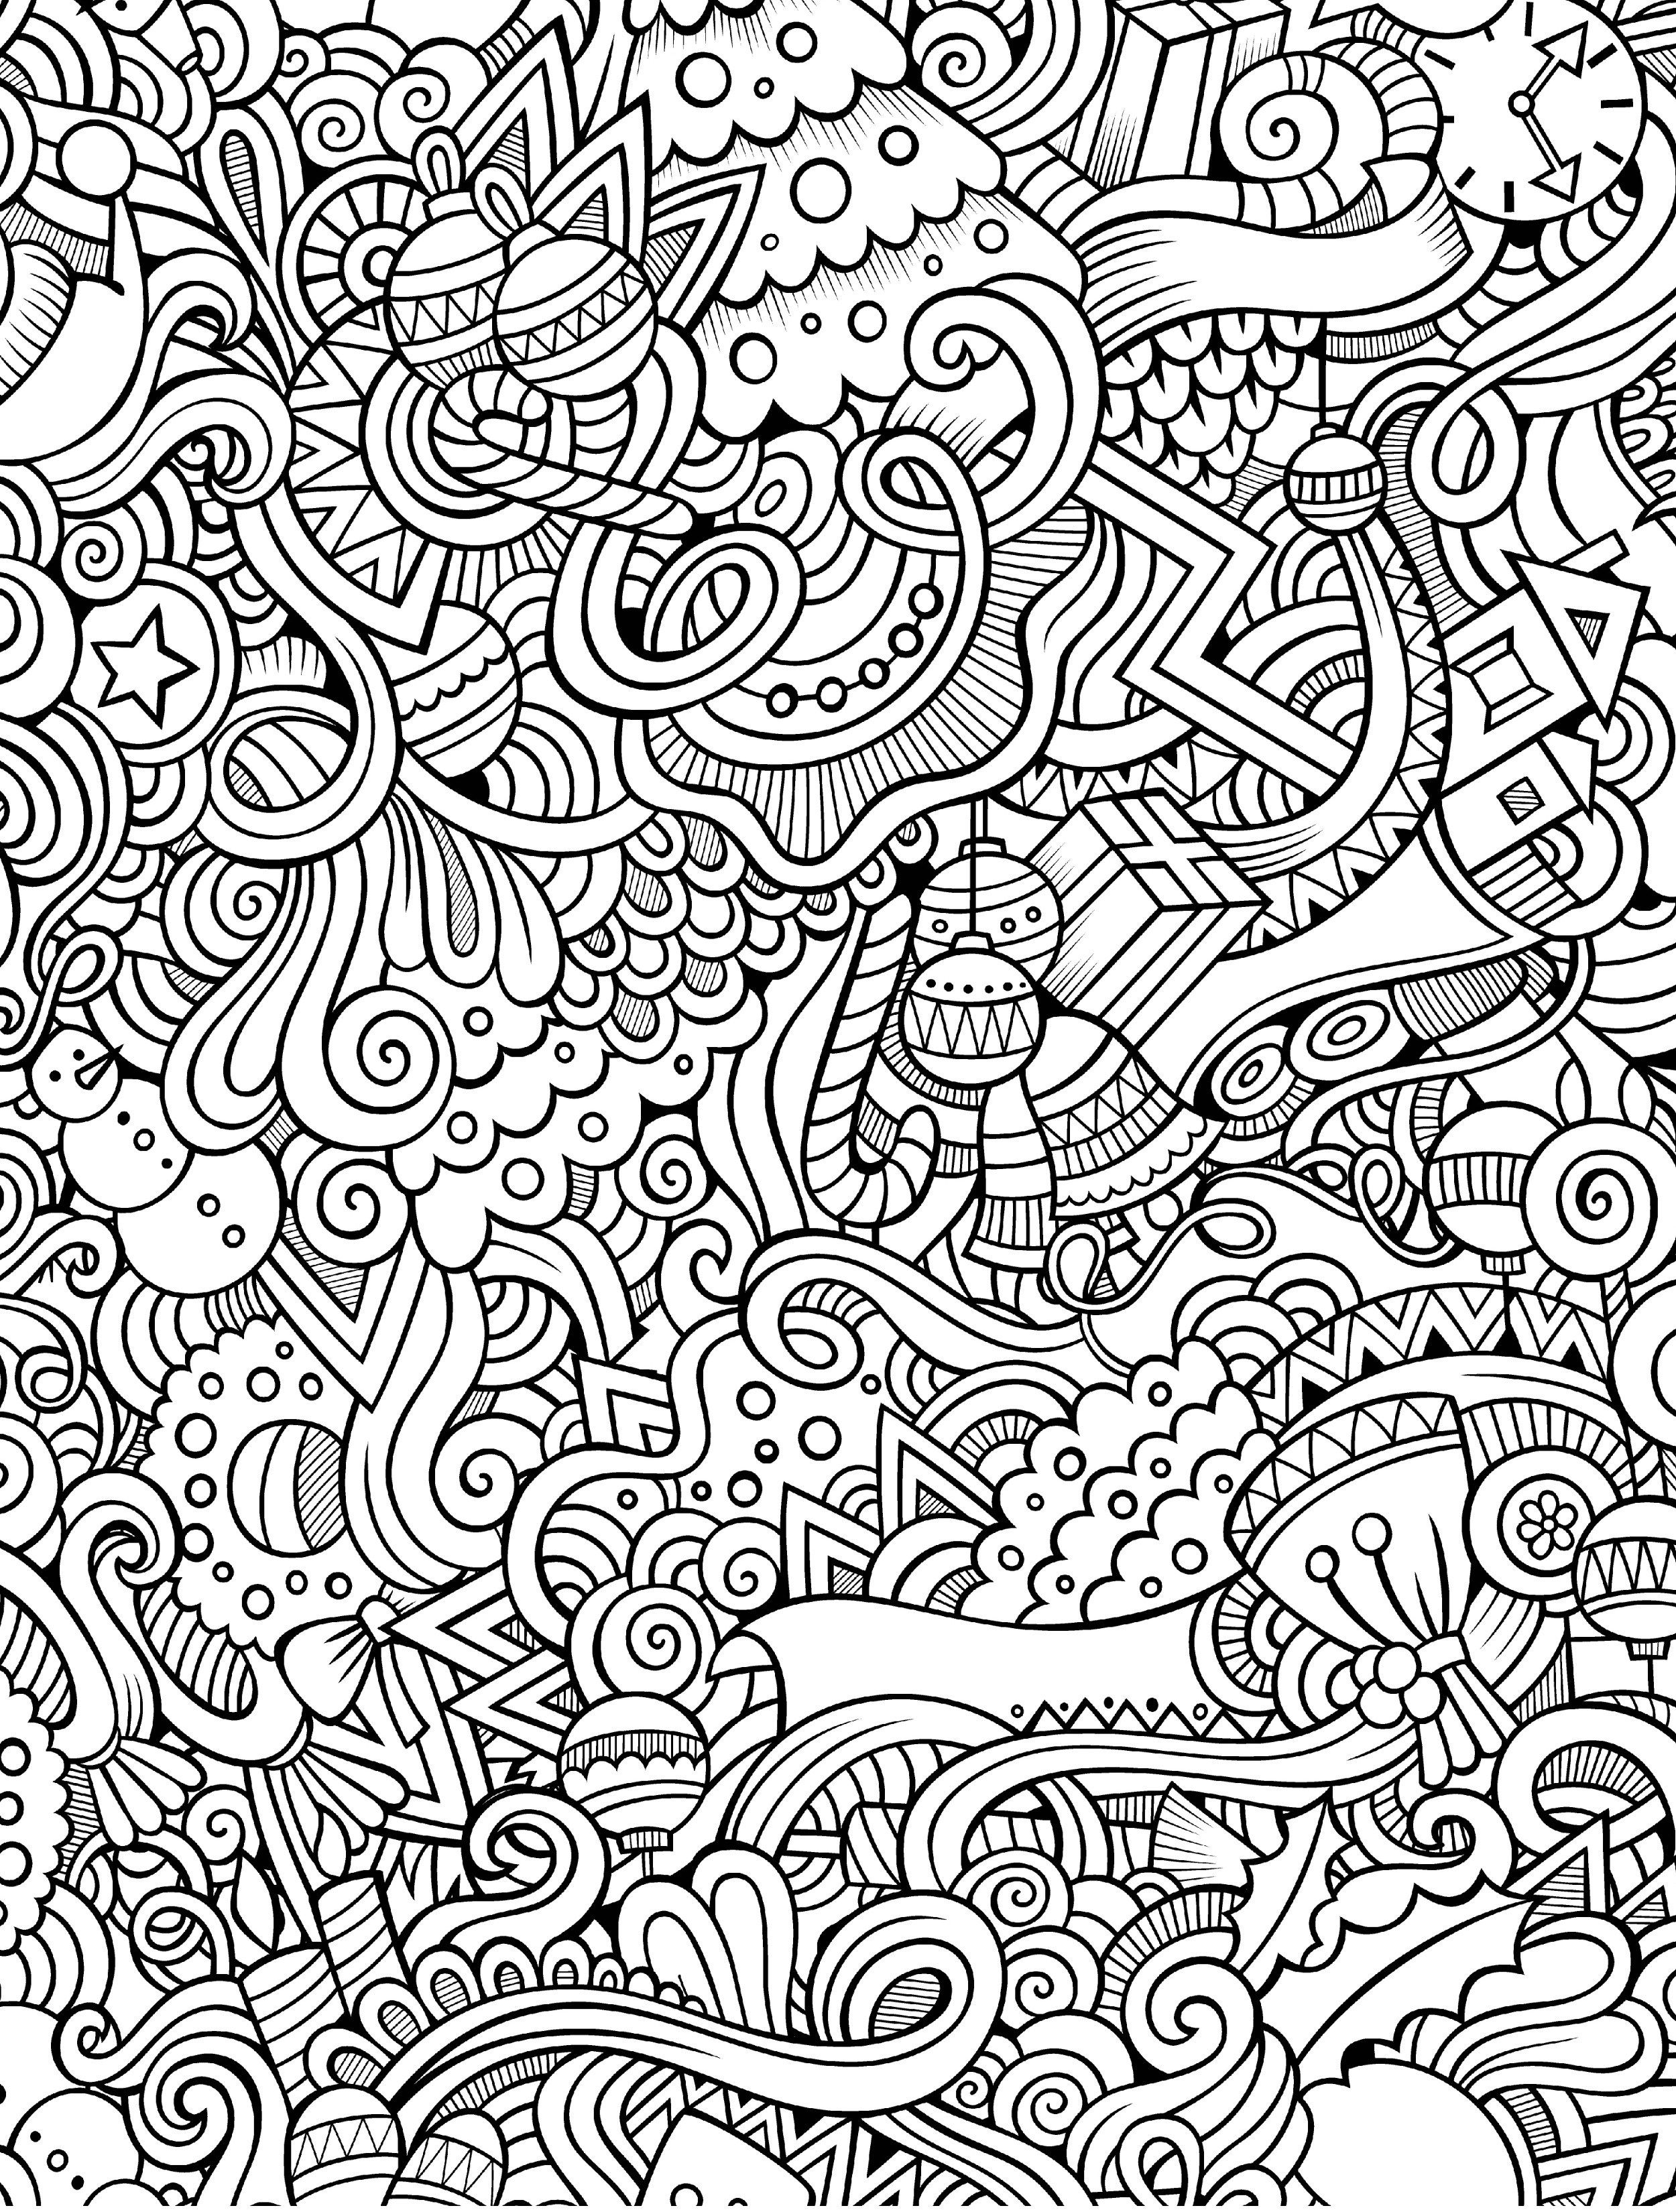 10 free printable holiday adult coloring pages | coloring pages